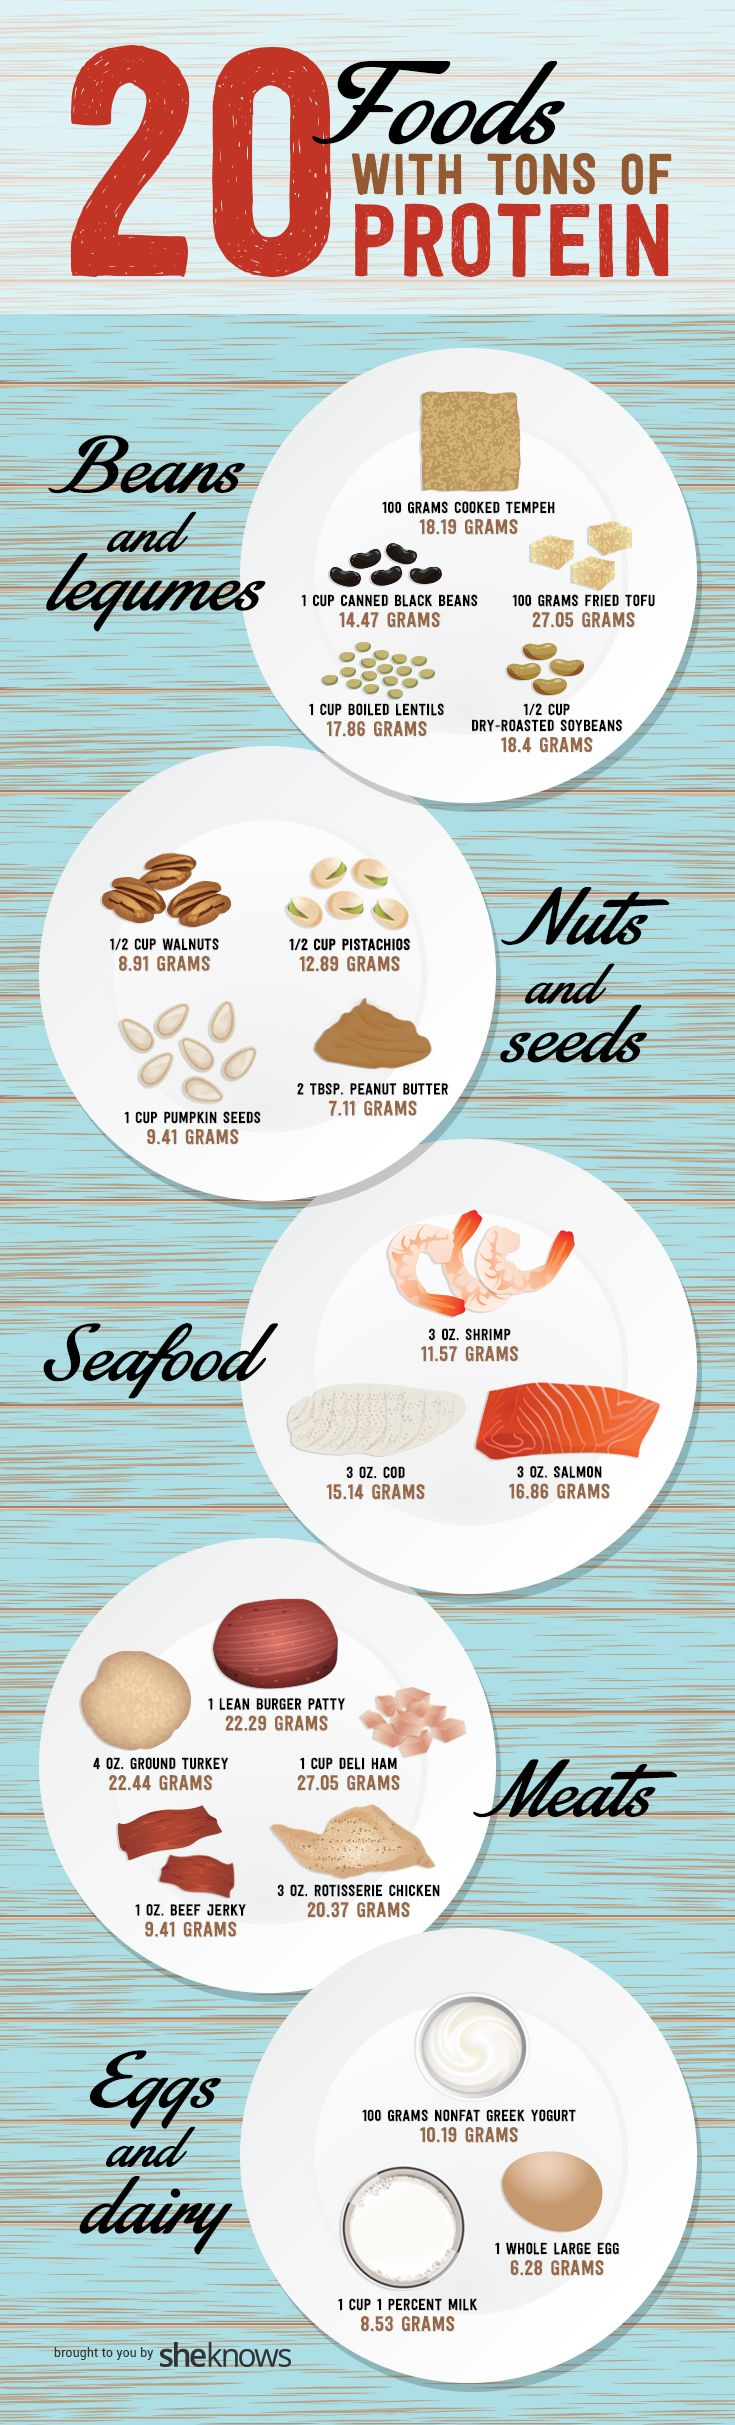 All of these foods have high protein to keep you full.